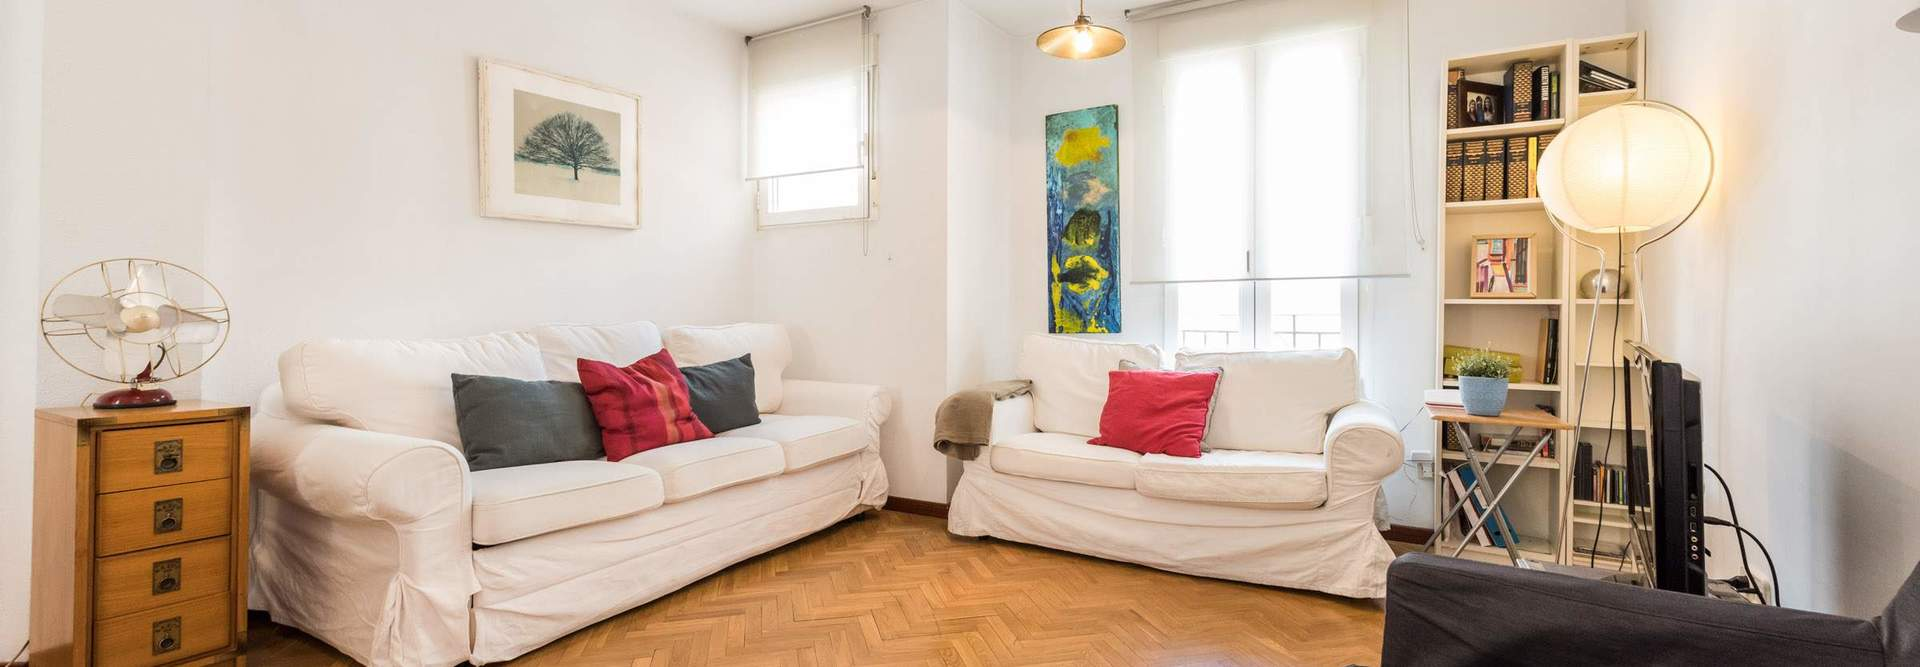 Home alquiler apartamento por d as madrid centro  14